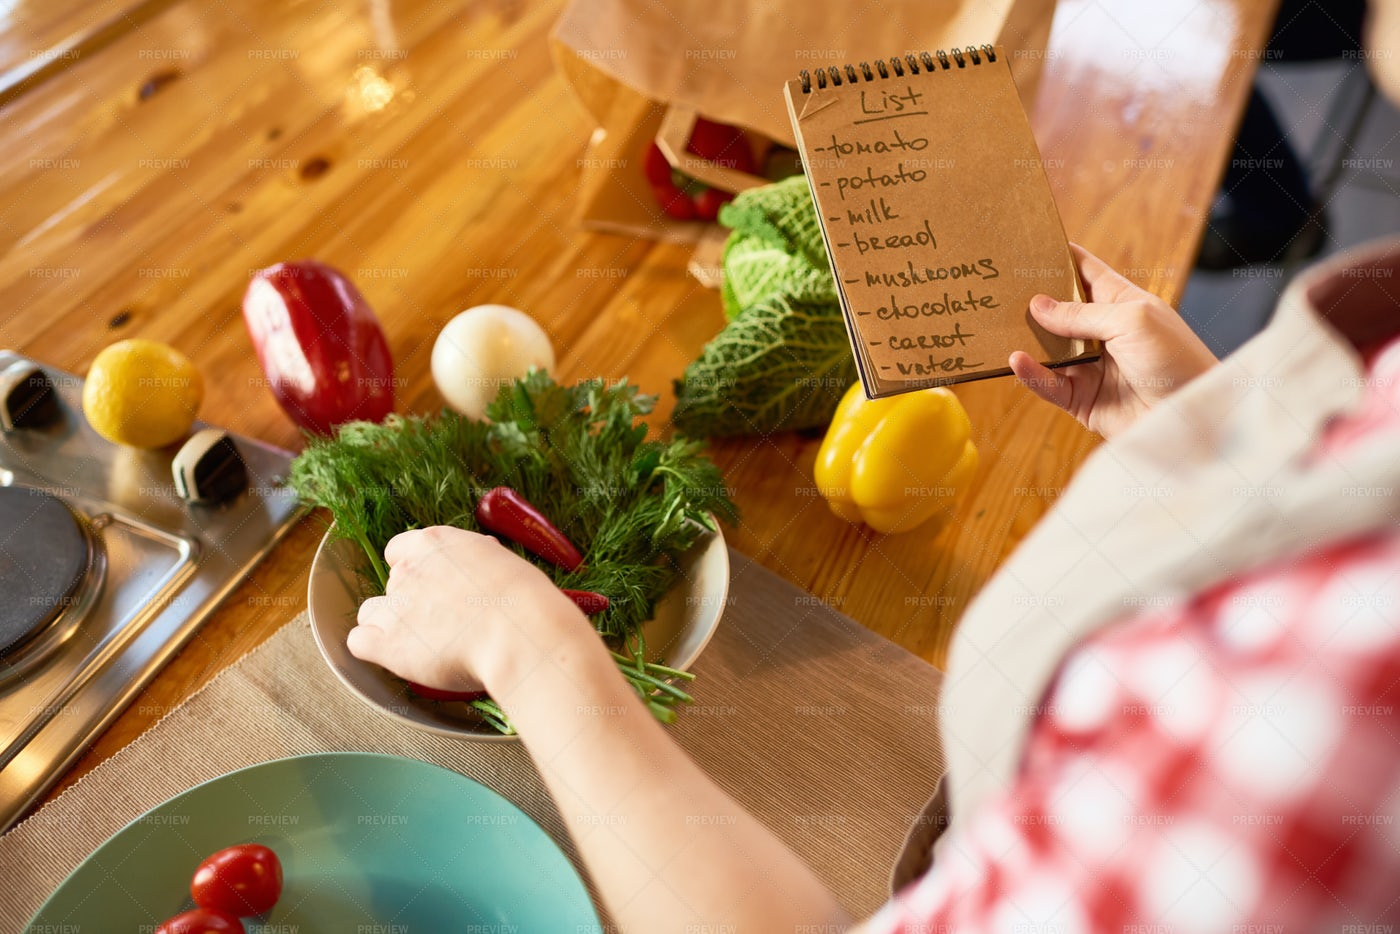 Studying List Of Ingredients: Stock Photos